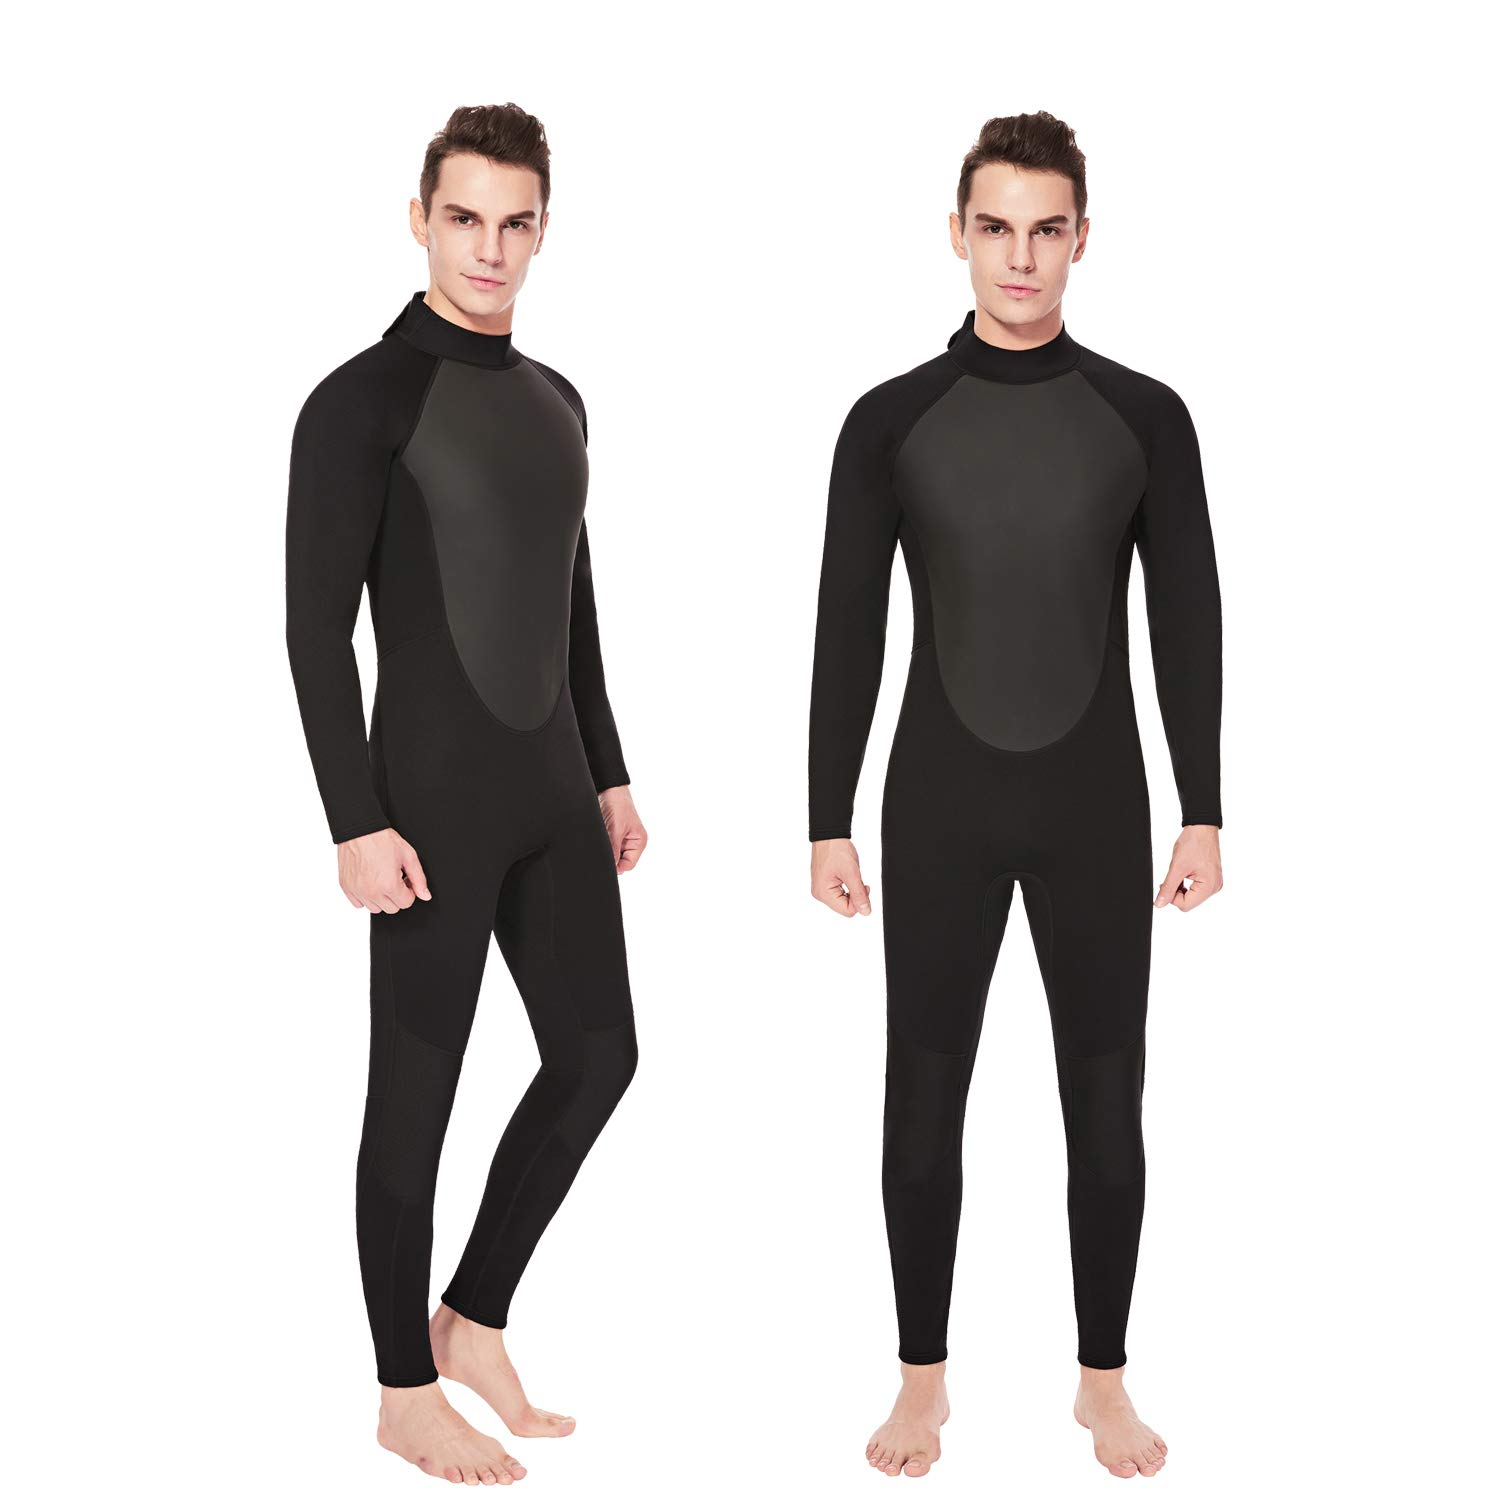 Flexel Wetsuit Men Full Diving Suits 3mm Premium Neoprene with CR Stretch Panels for Surfing Swimming Snorkeling Stand-Up Paddleboarding Fishing Scuba Boys (3mm Black, Large) by Flexel